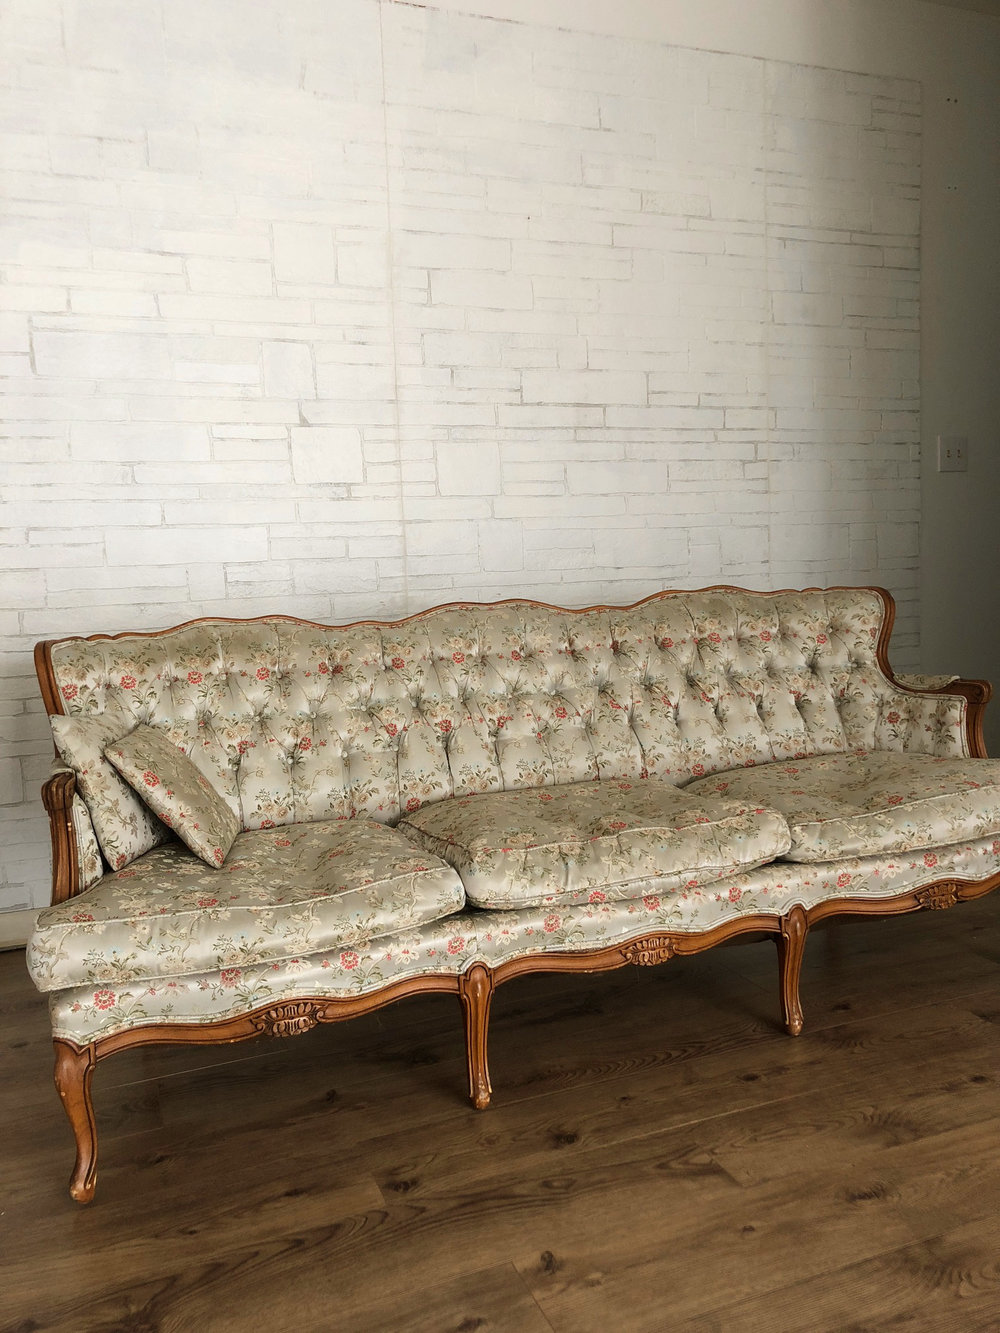 extra long  antique sofa - white brick backdrop